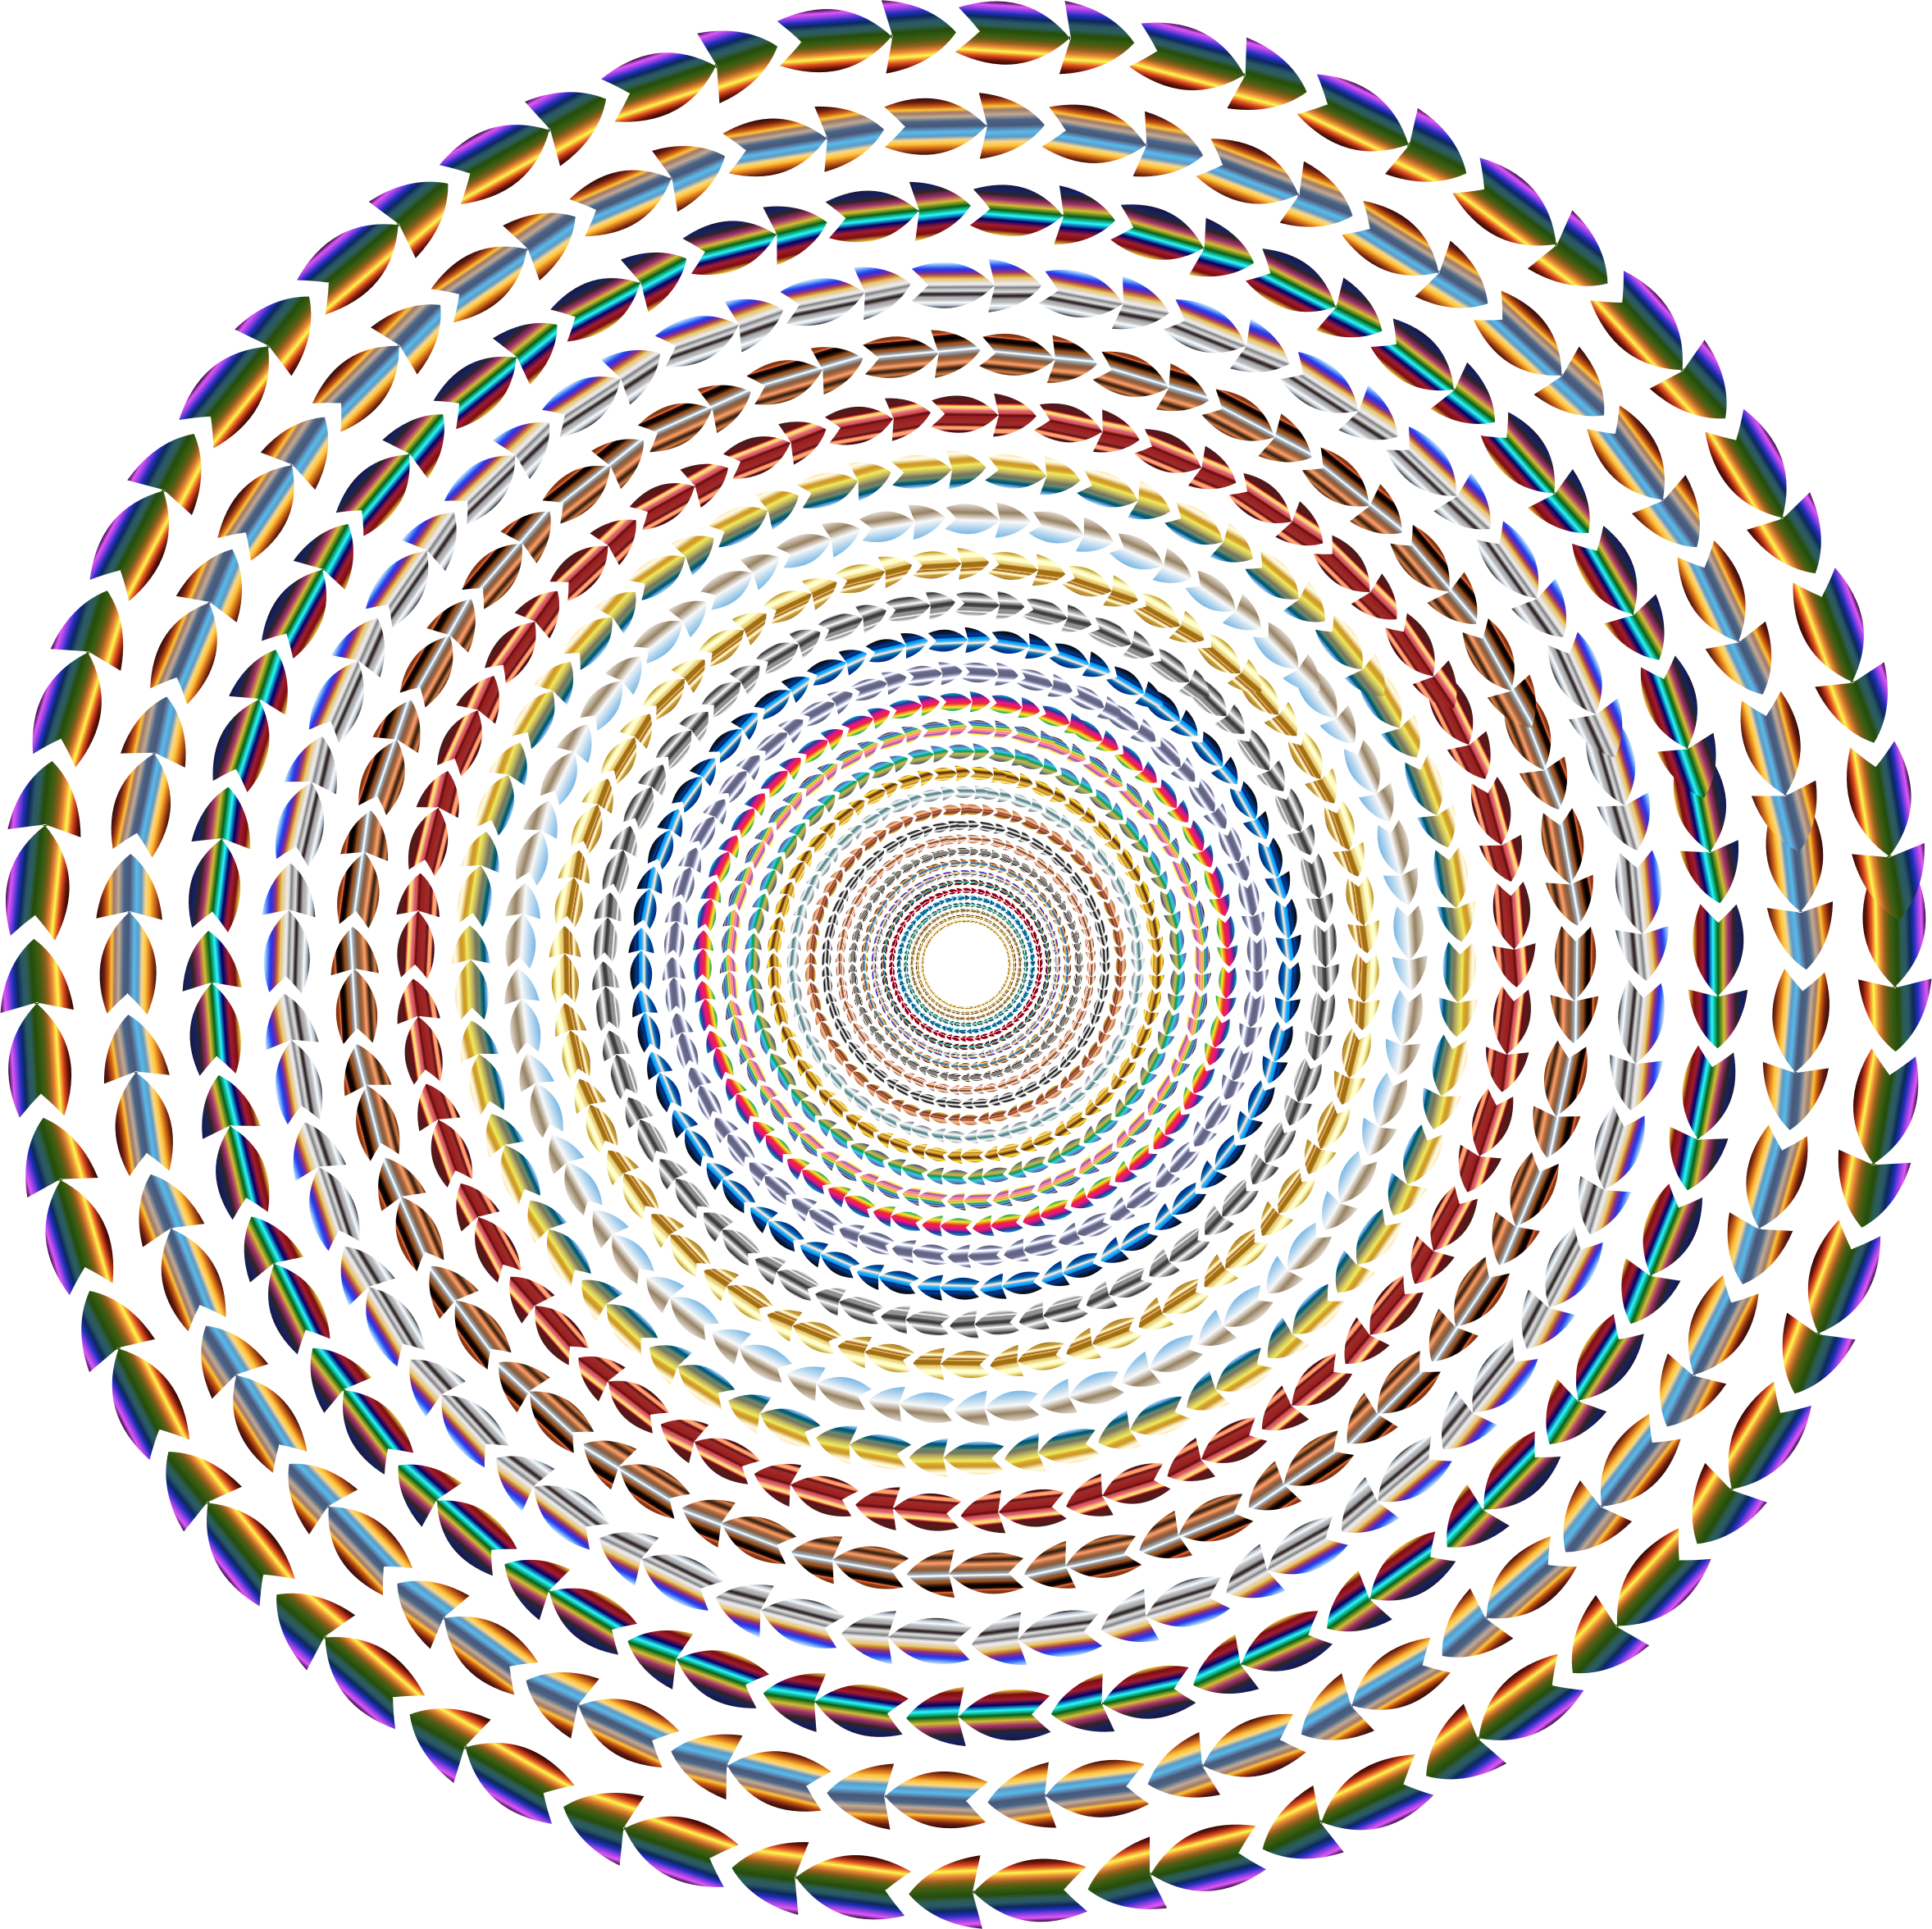 Polychromatic Colorful Direction Circle Vortex No Background by GDJ